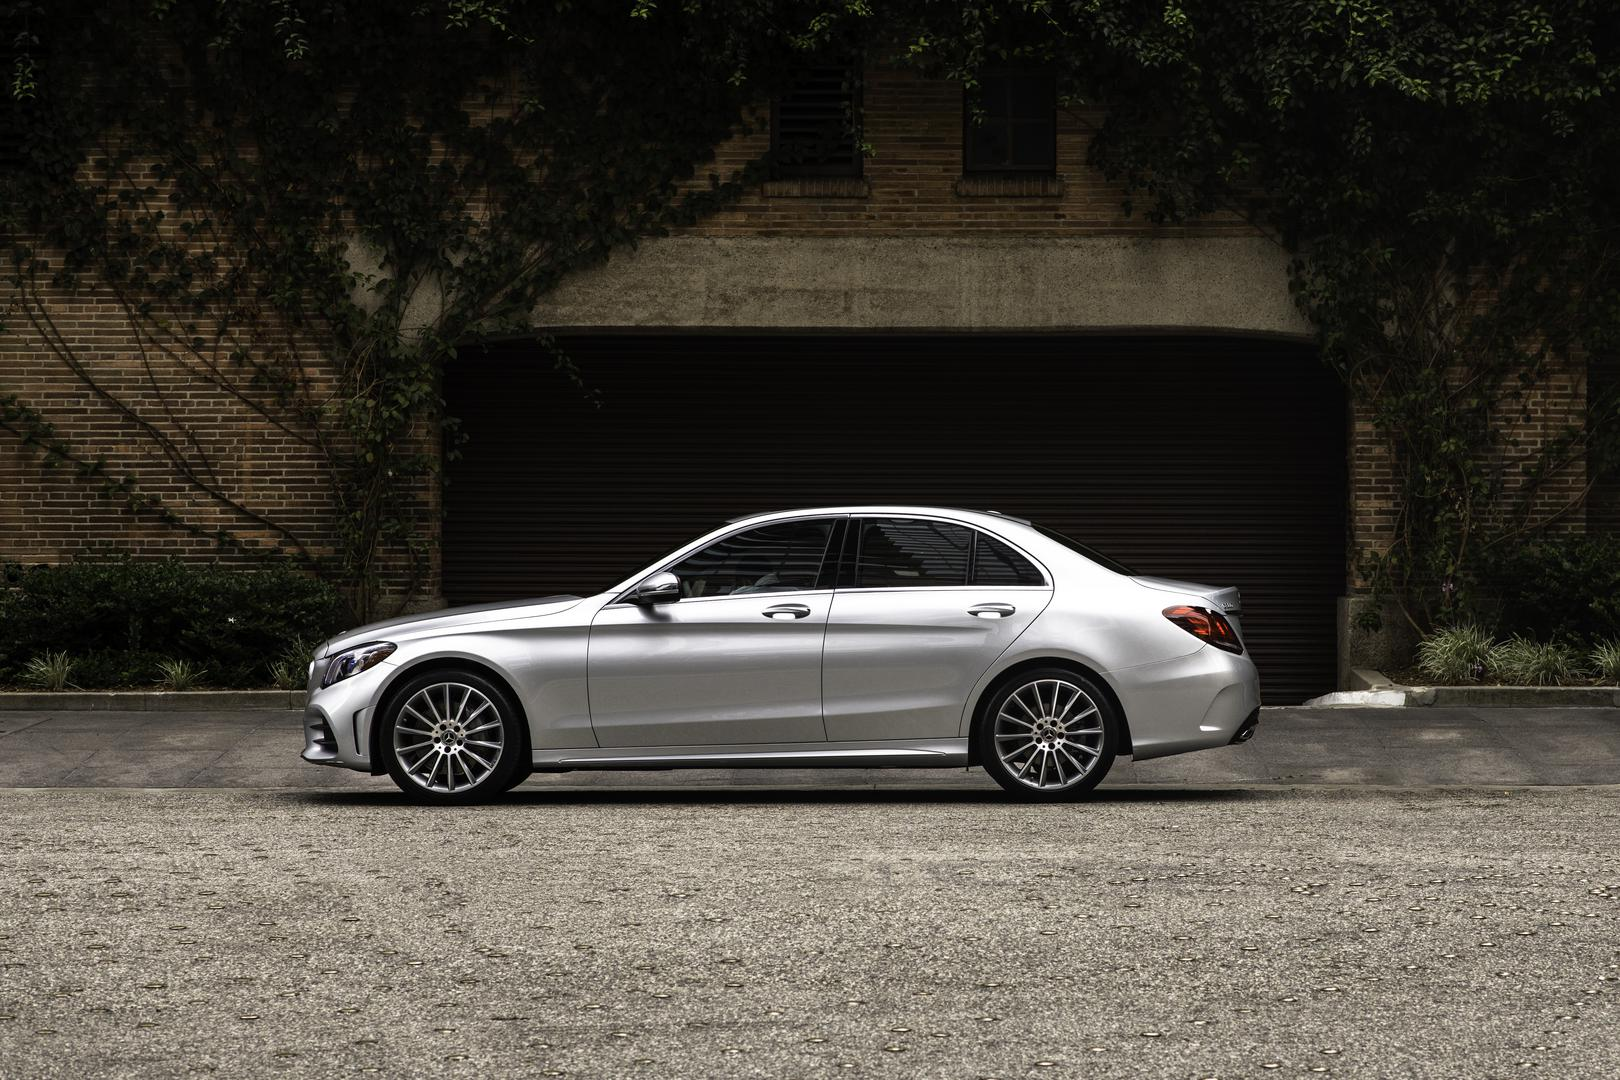 Lease a Mercedes-Benz in Rockville Centre, NY